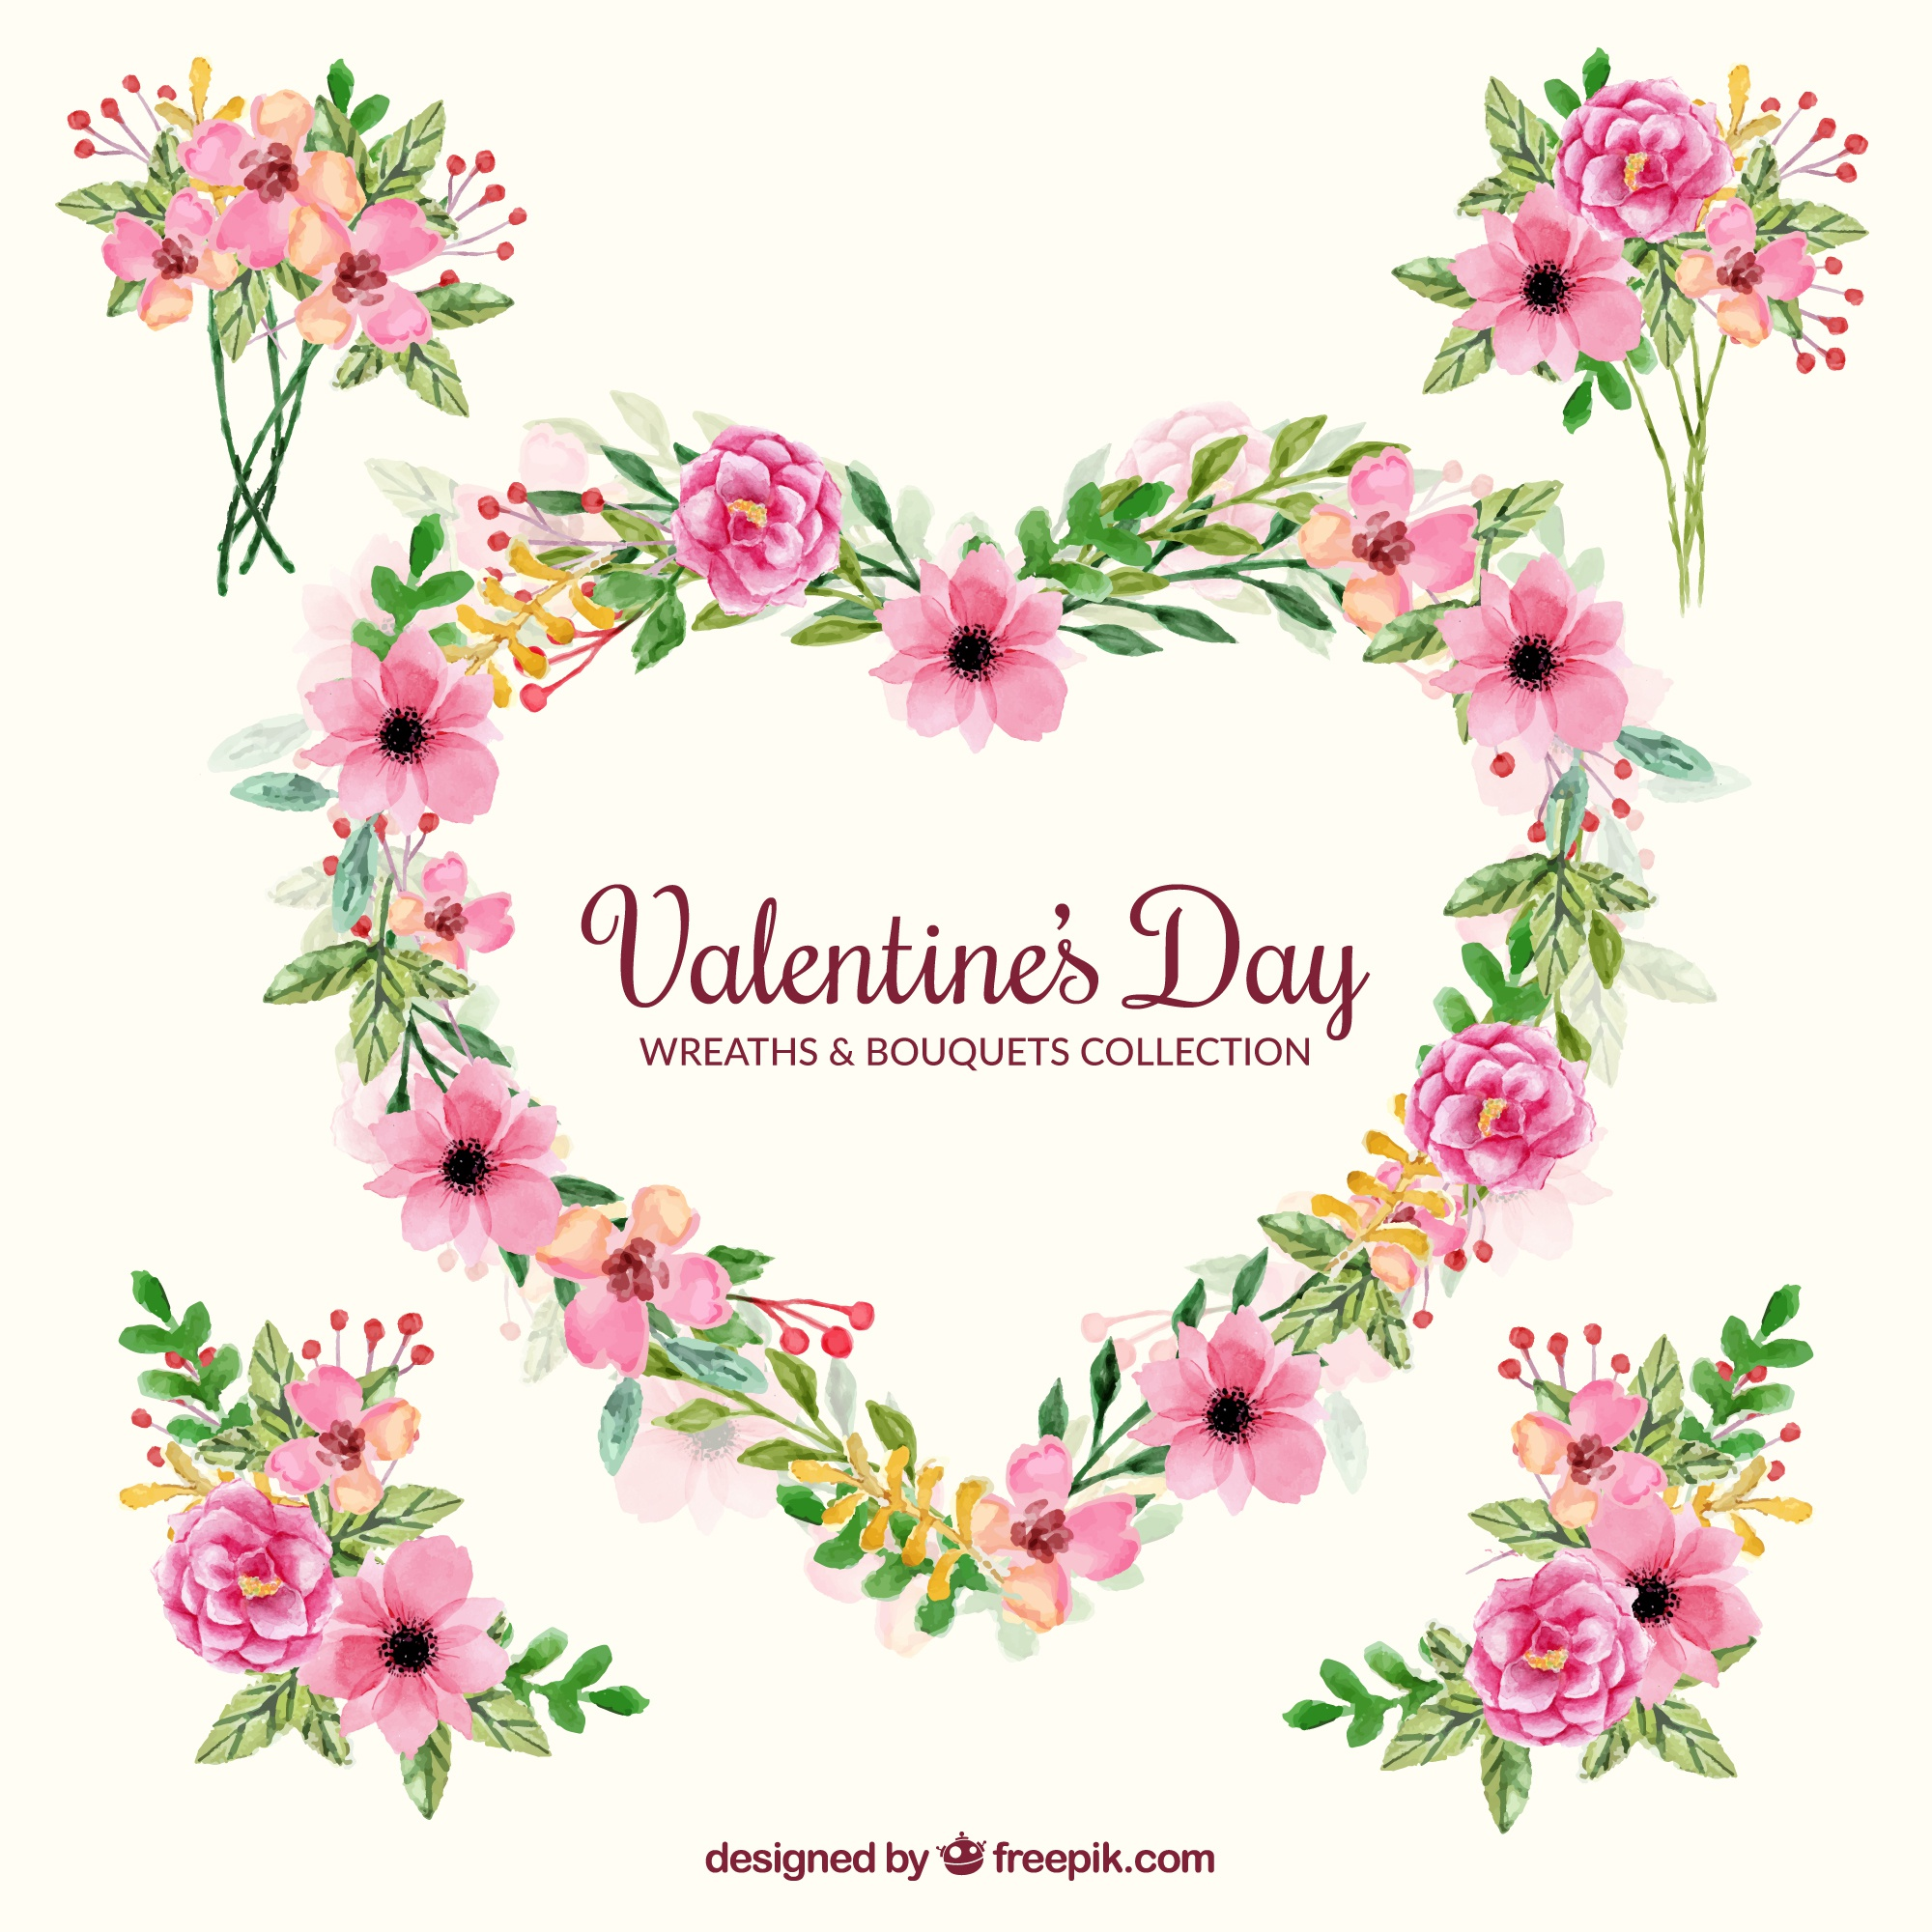 Decorative bouquets and wreath for valentine's day